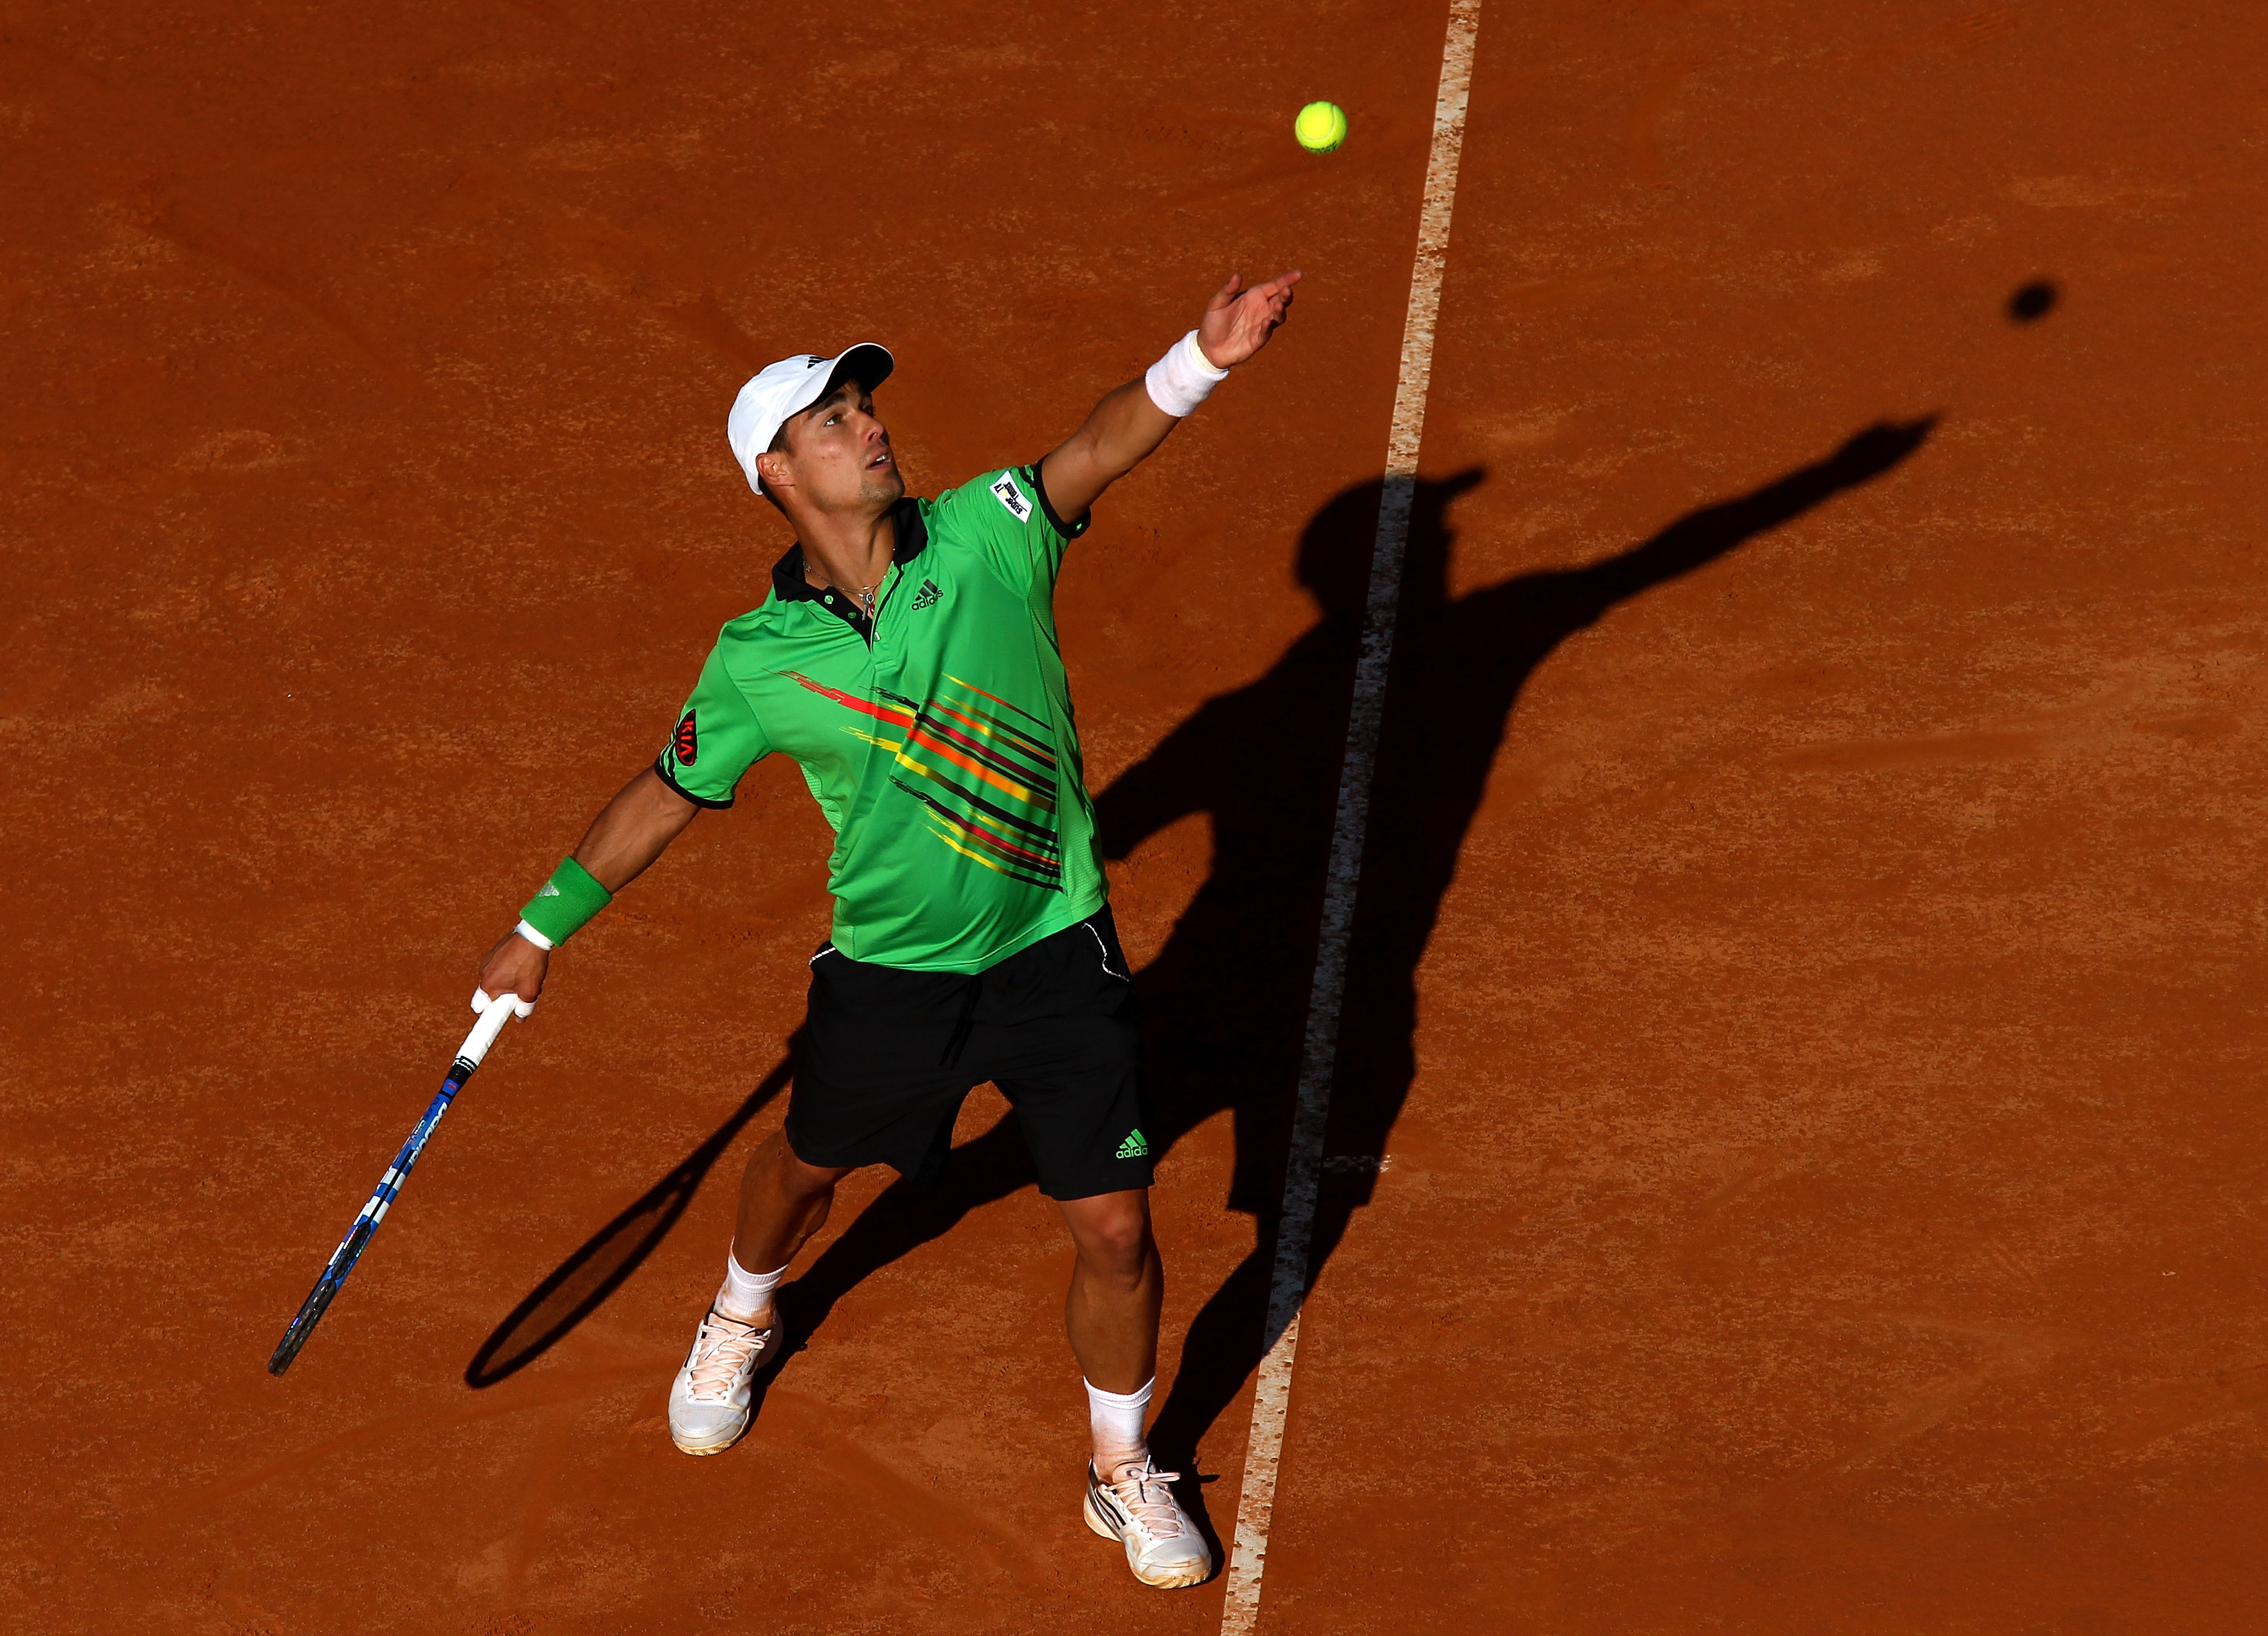 ROME, ITALY - MAY 10:  Fabio Fognini of Italy serves during his first round match against Stanislav Wawrinka of Switzerland during day three of the Internazionali BNL d'Italia at the Foro Italico Tennis Centre on May 10, 2011 in Rome, Italy.  (Photo by Al